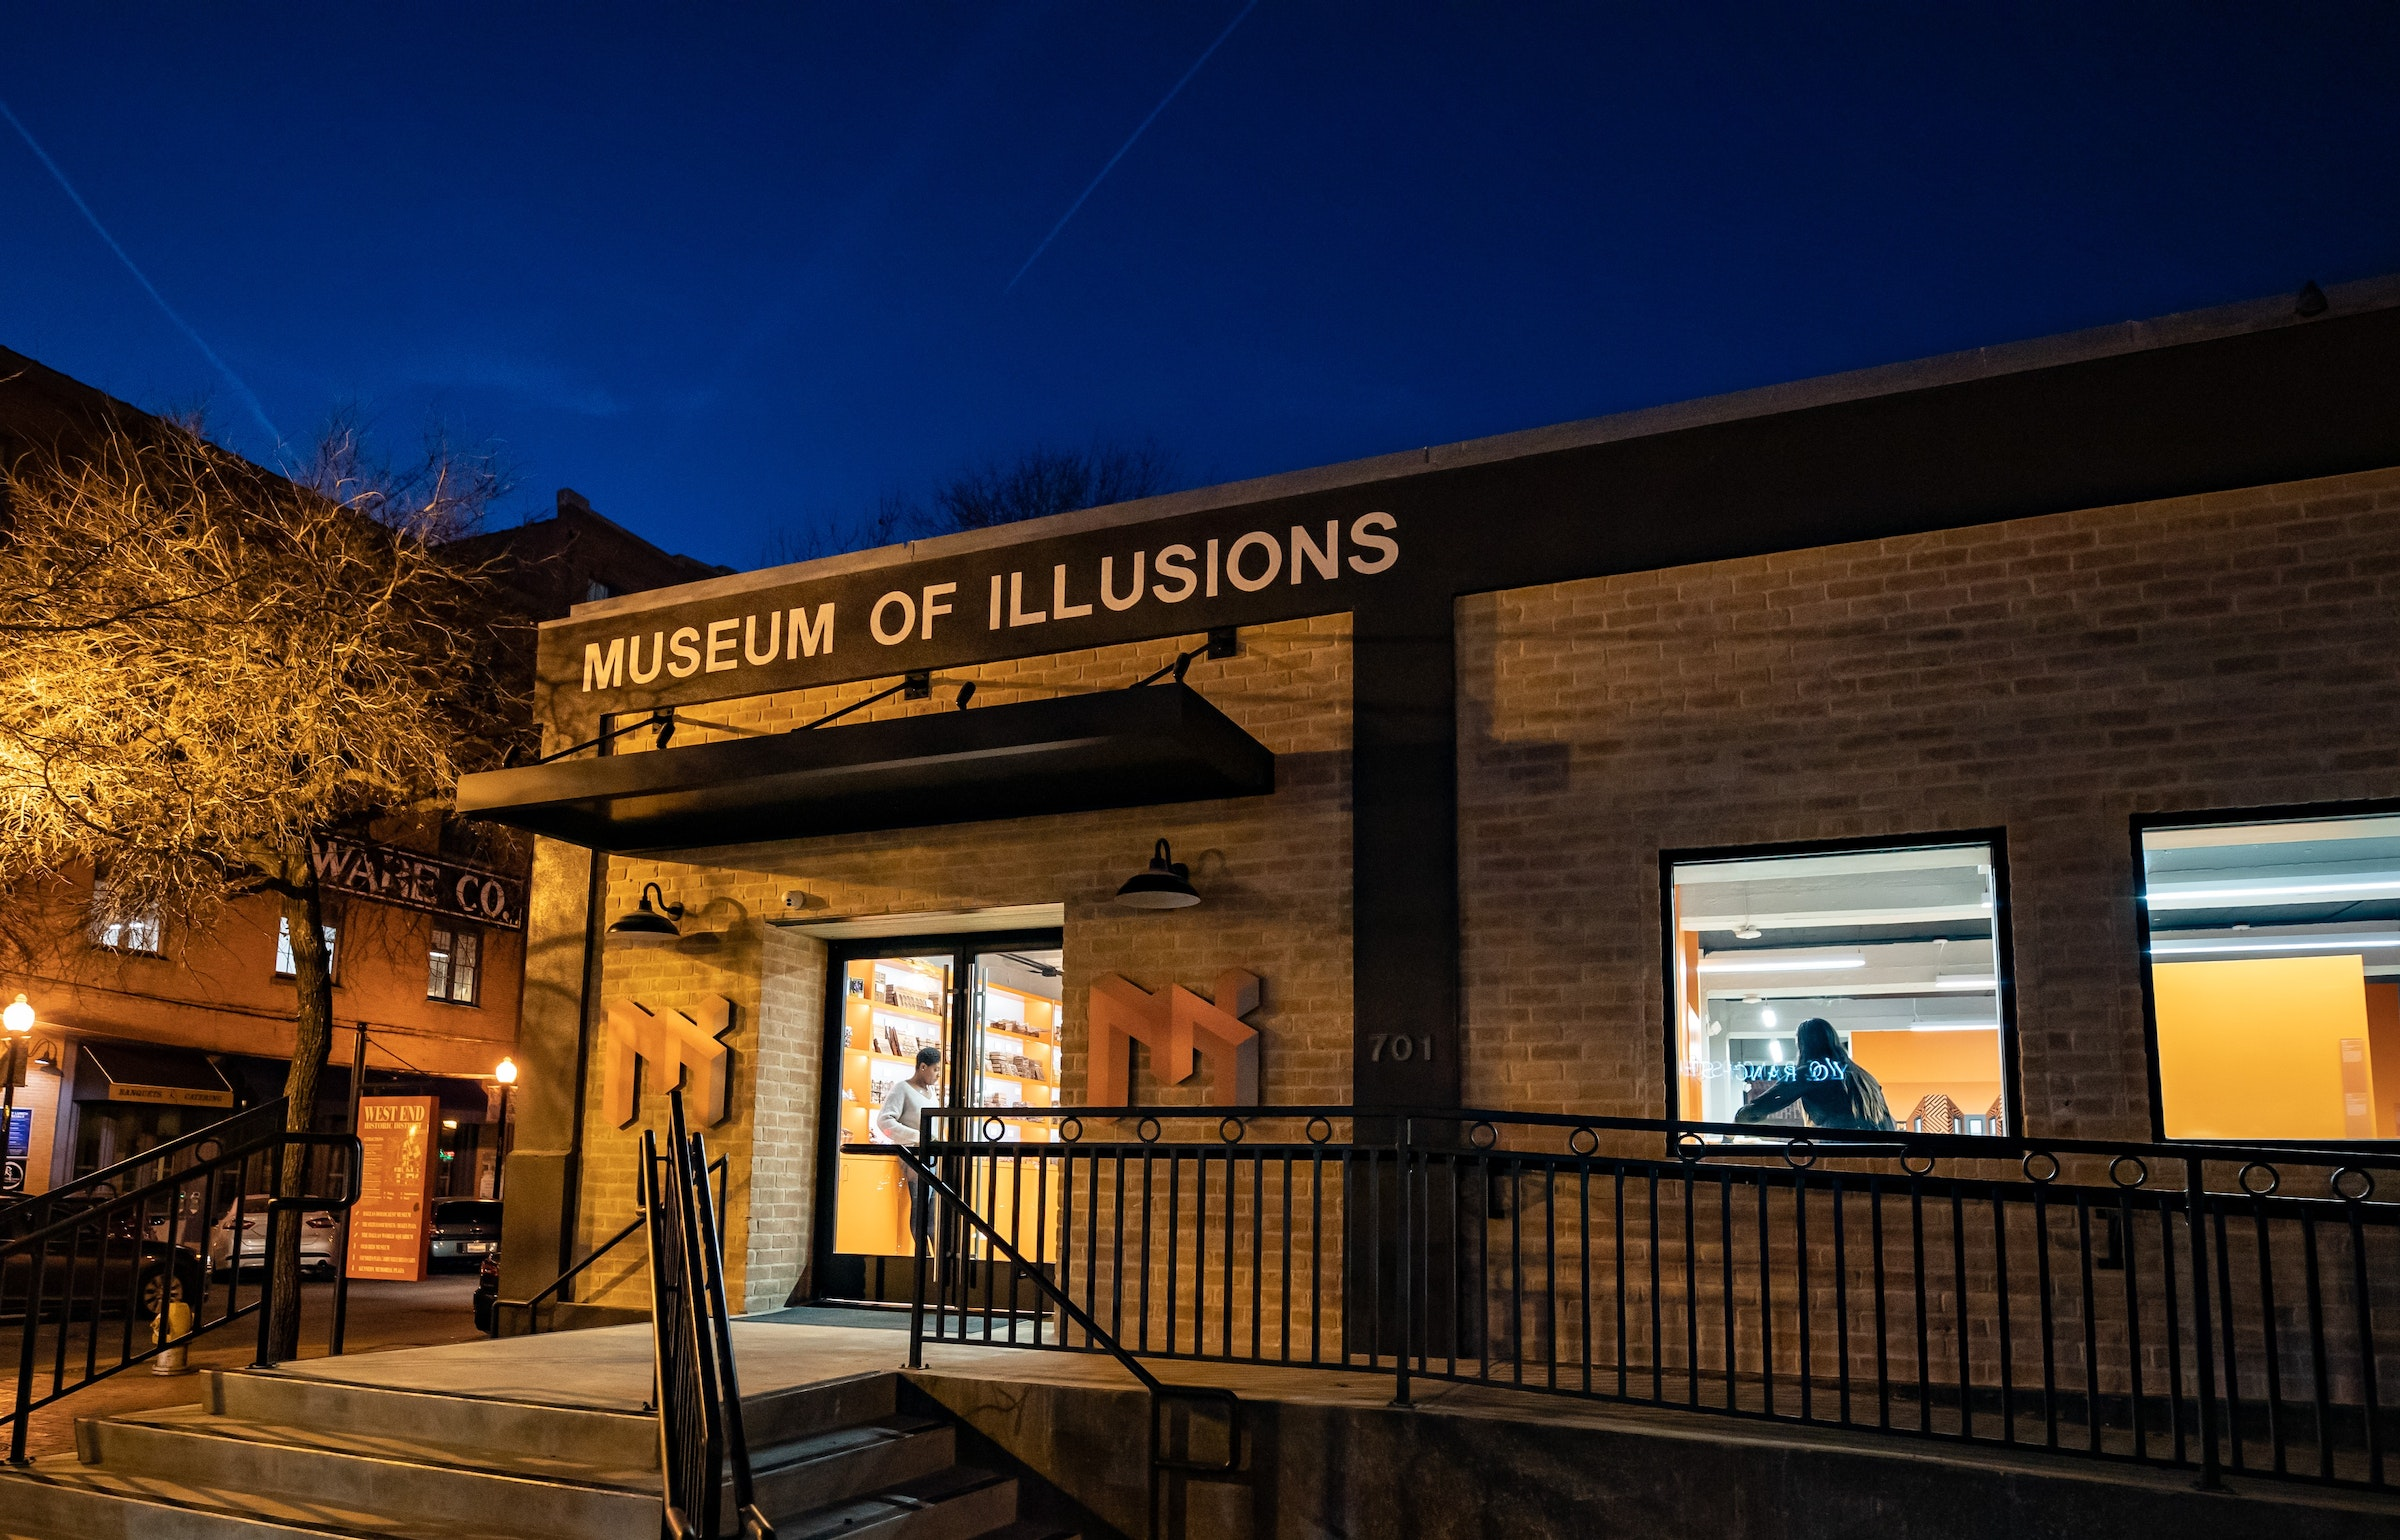 Dallas Museum of Illusions in Beyond Dallas